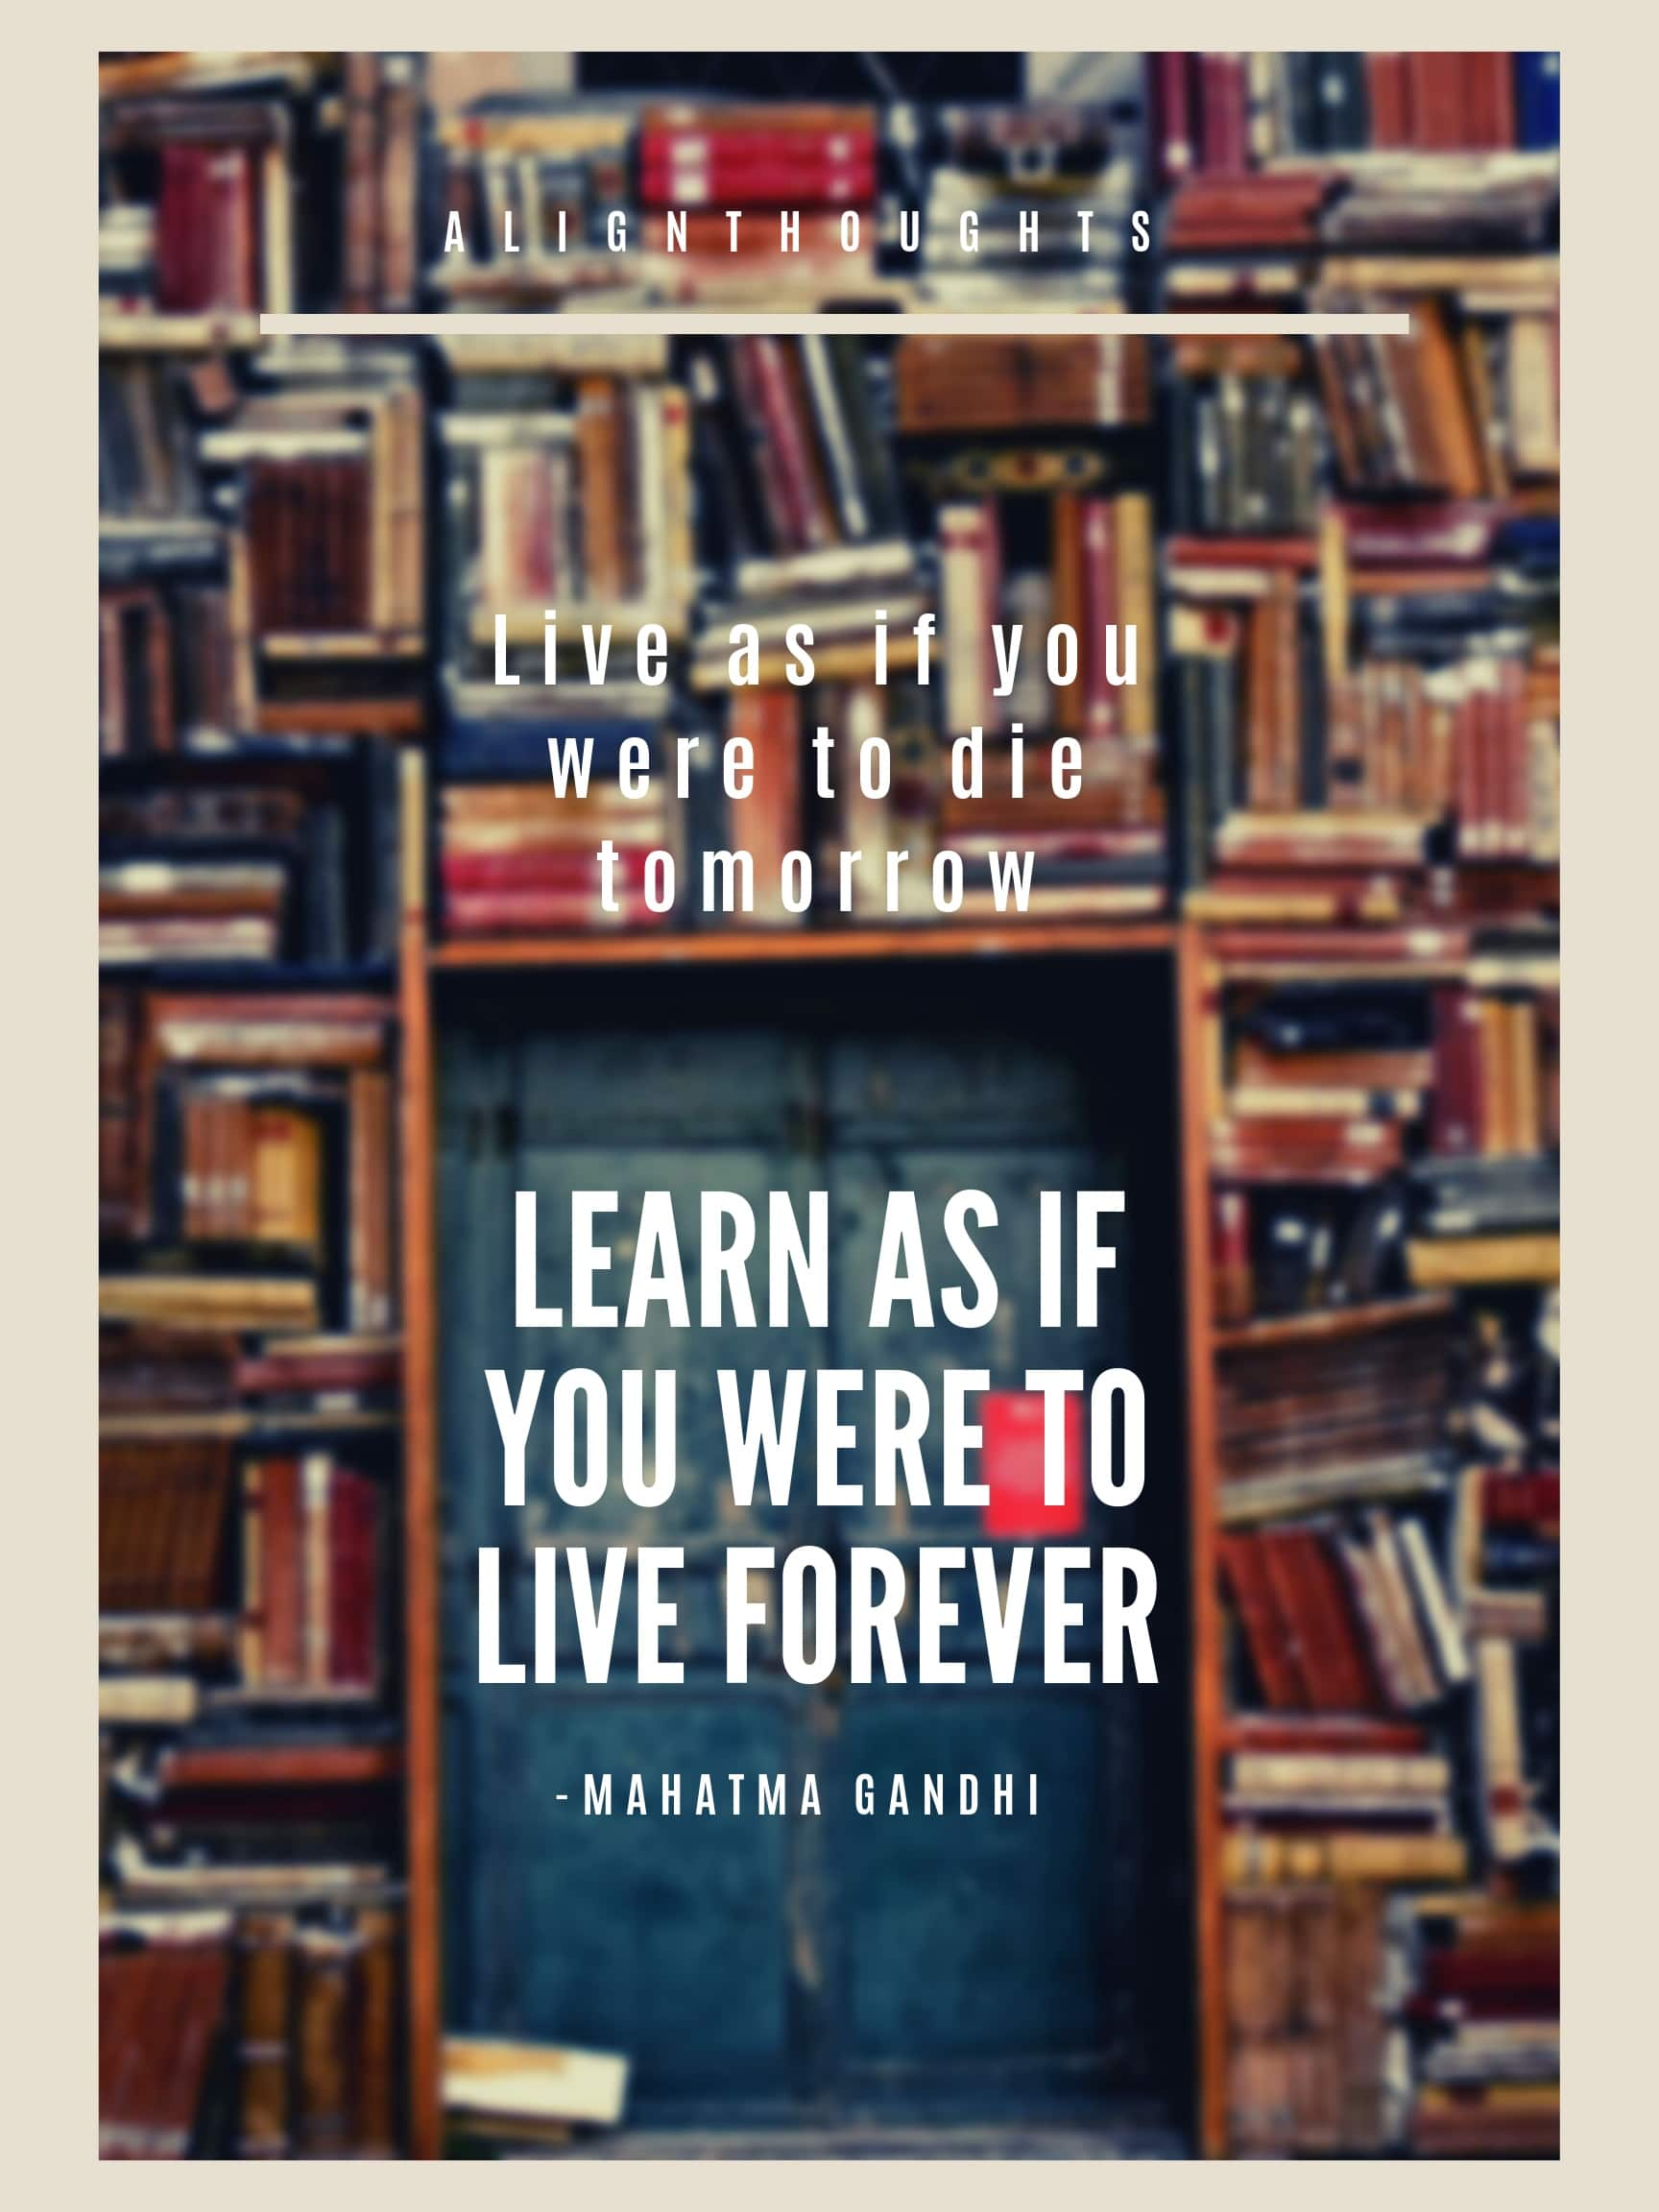 never stop learning quotes-lifelong learning